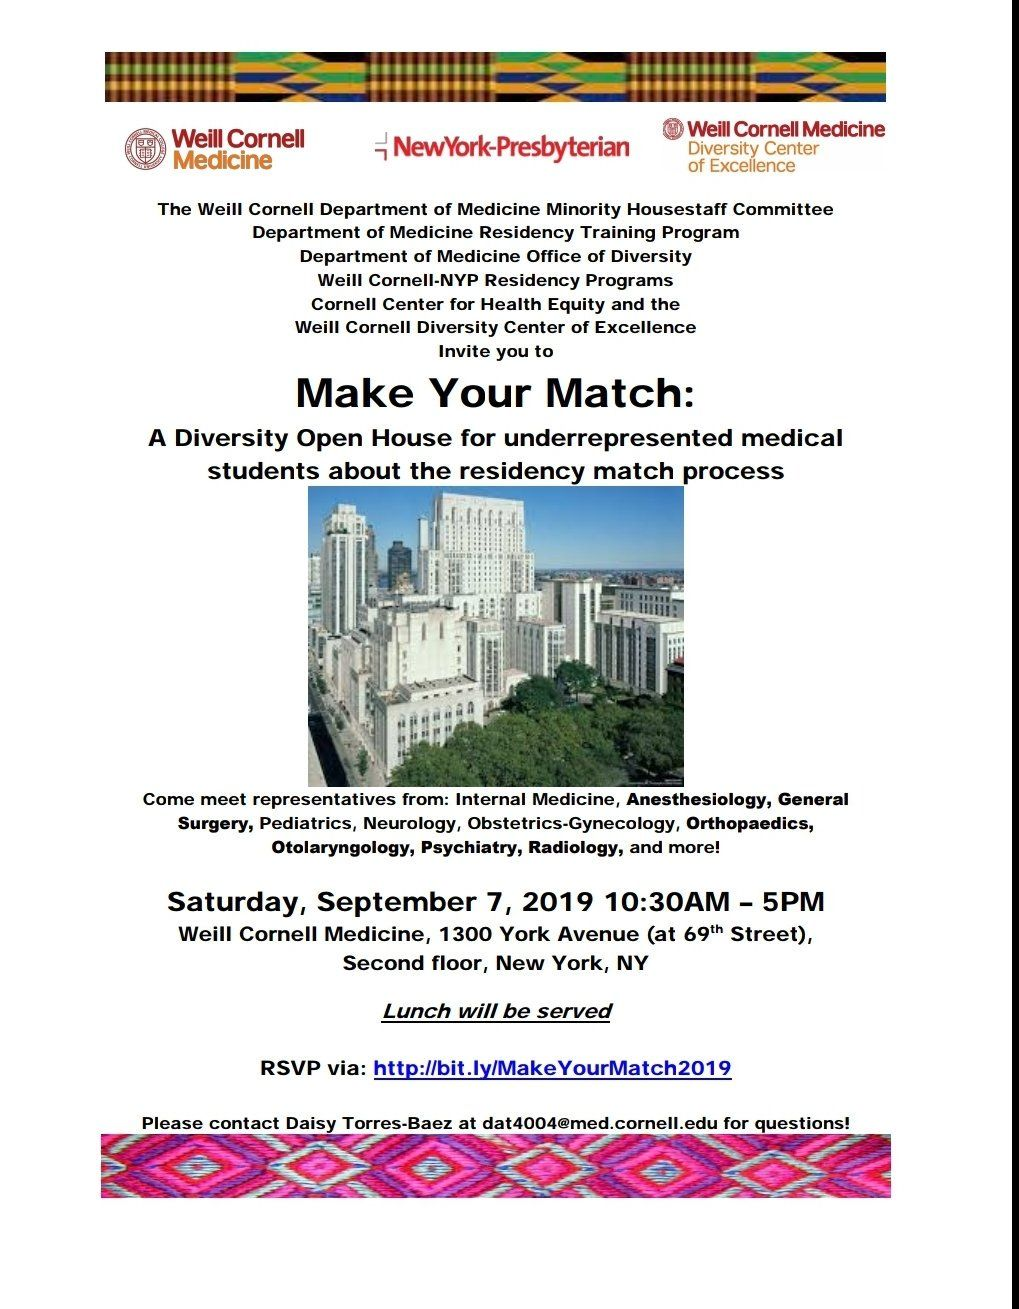 Make Your Match flyer